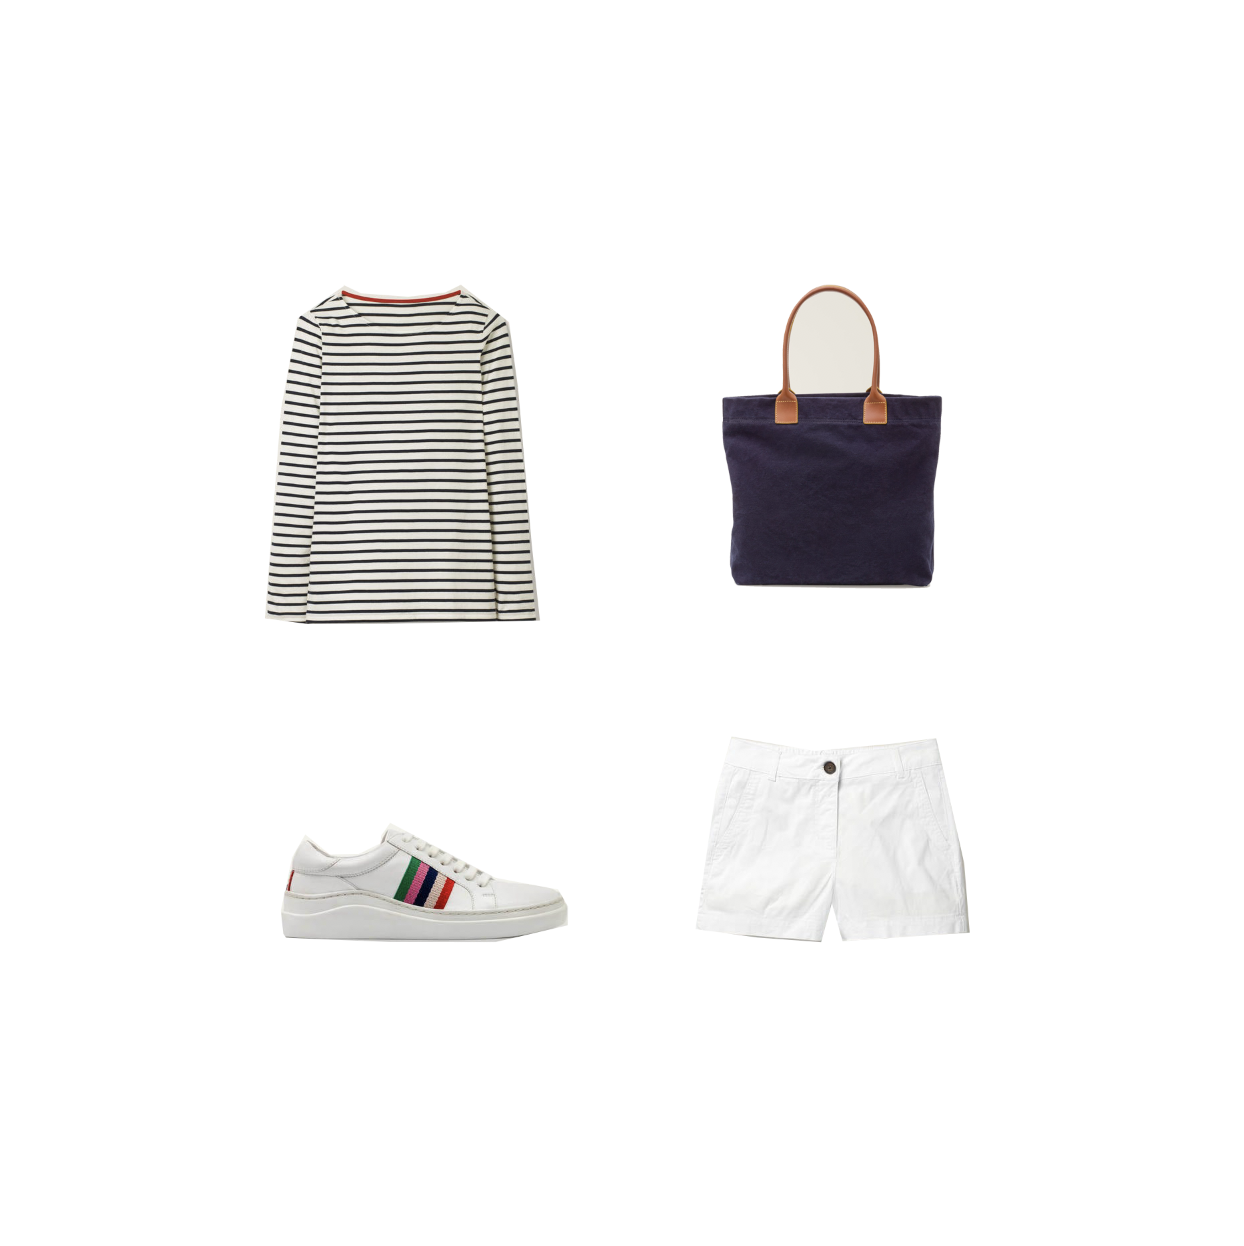 my midlife fashion, boden Holywell tote bag, boden stripe trainers, boden cotton shorts, boden long sleeve cotton breton top